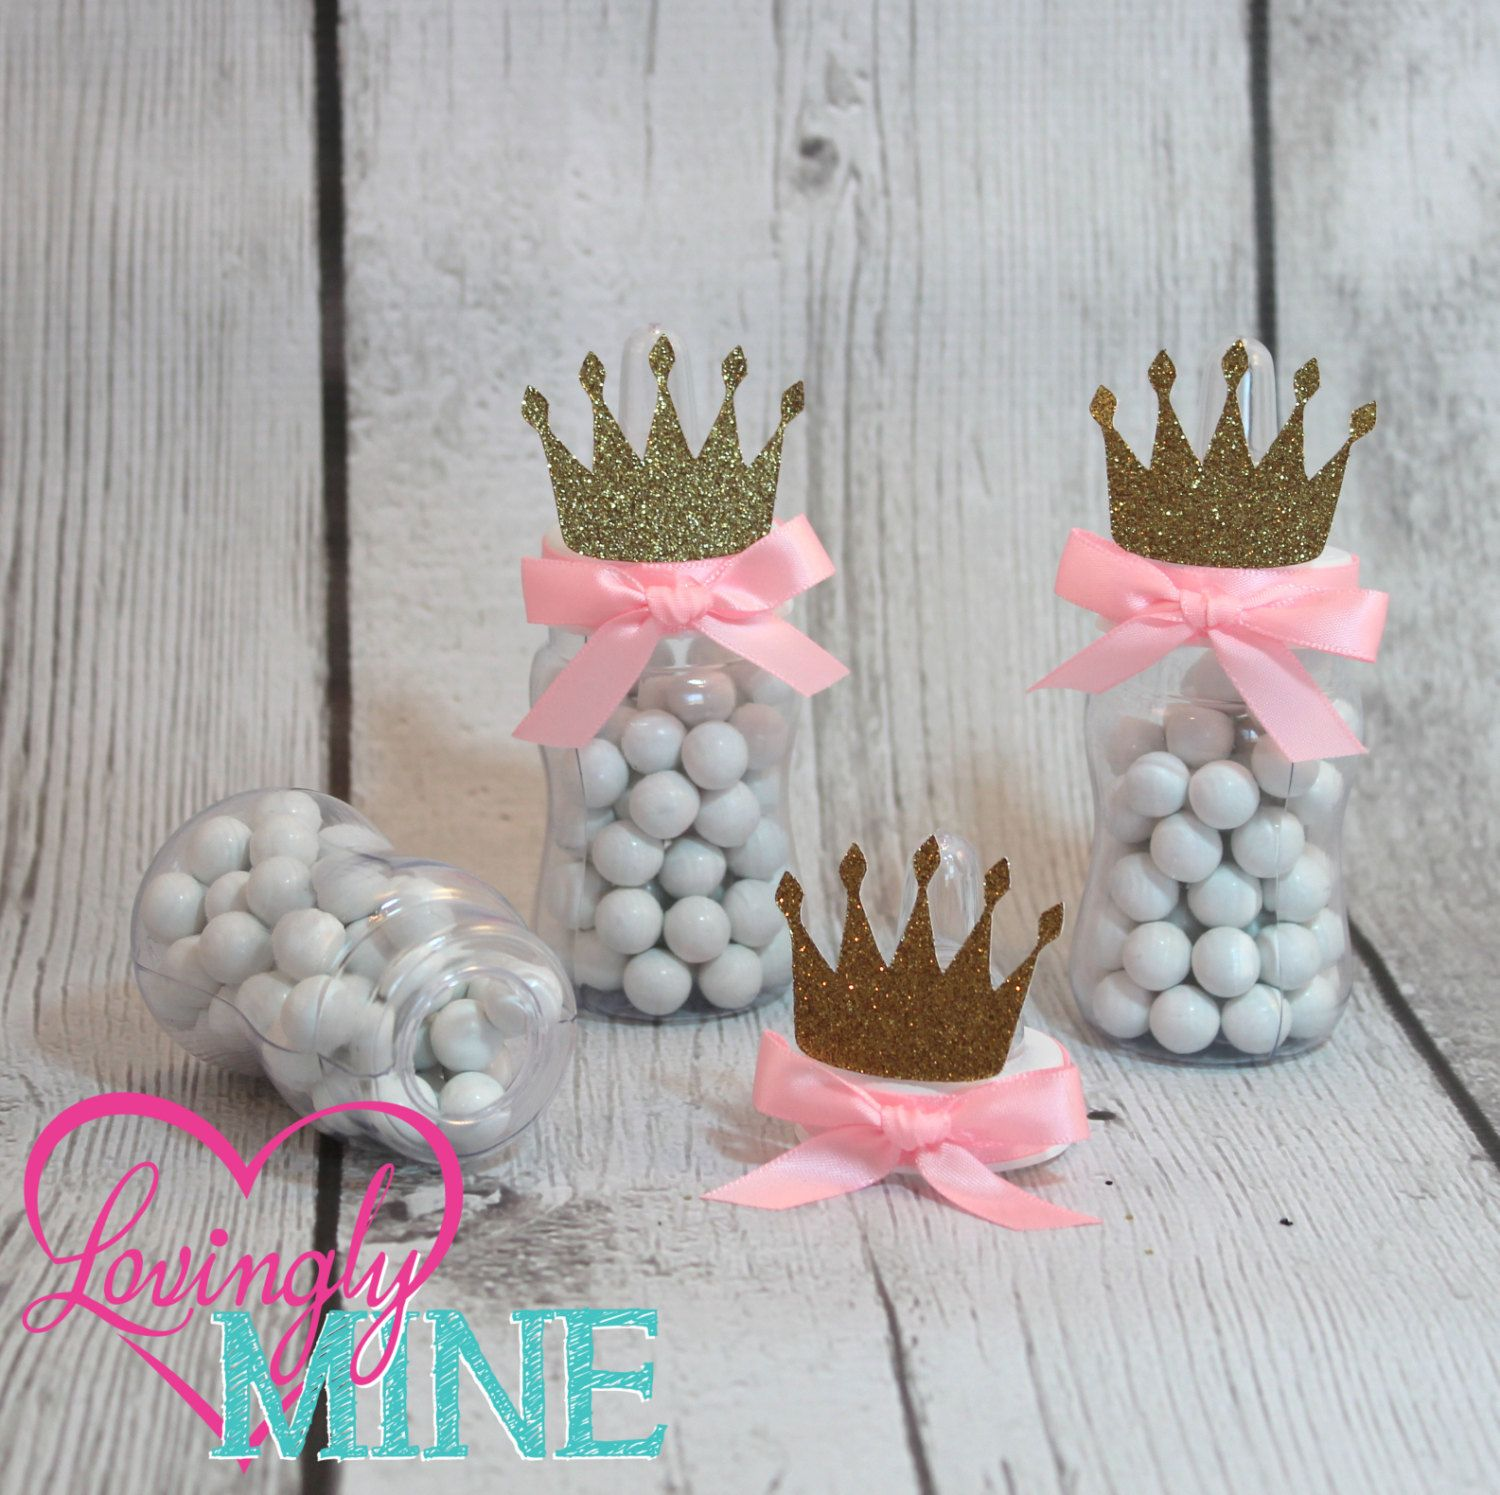 Little Princess Baby Bottle Favors in Baby Pink & Glitter Gold